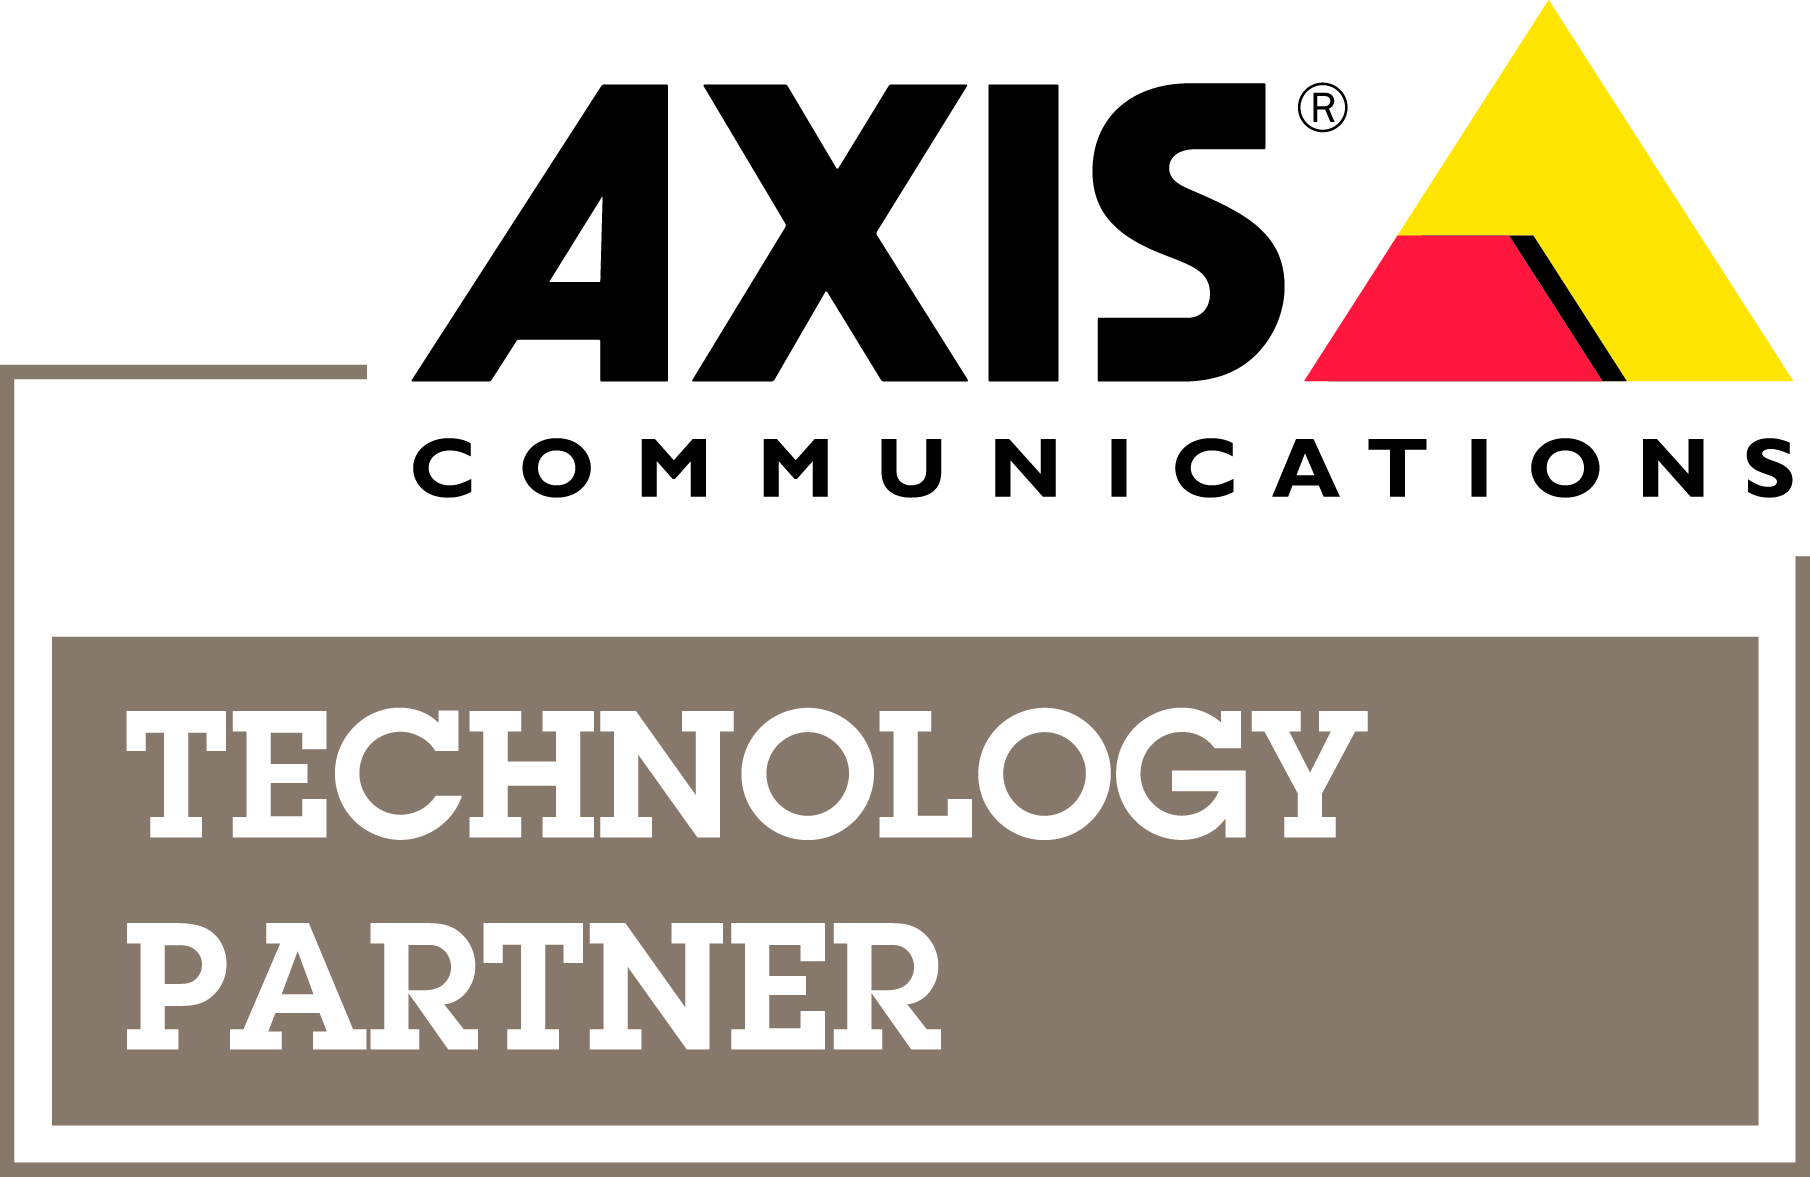 axis_tpp_tech_partner_cmyk_logo.jpg